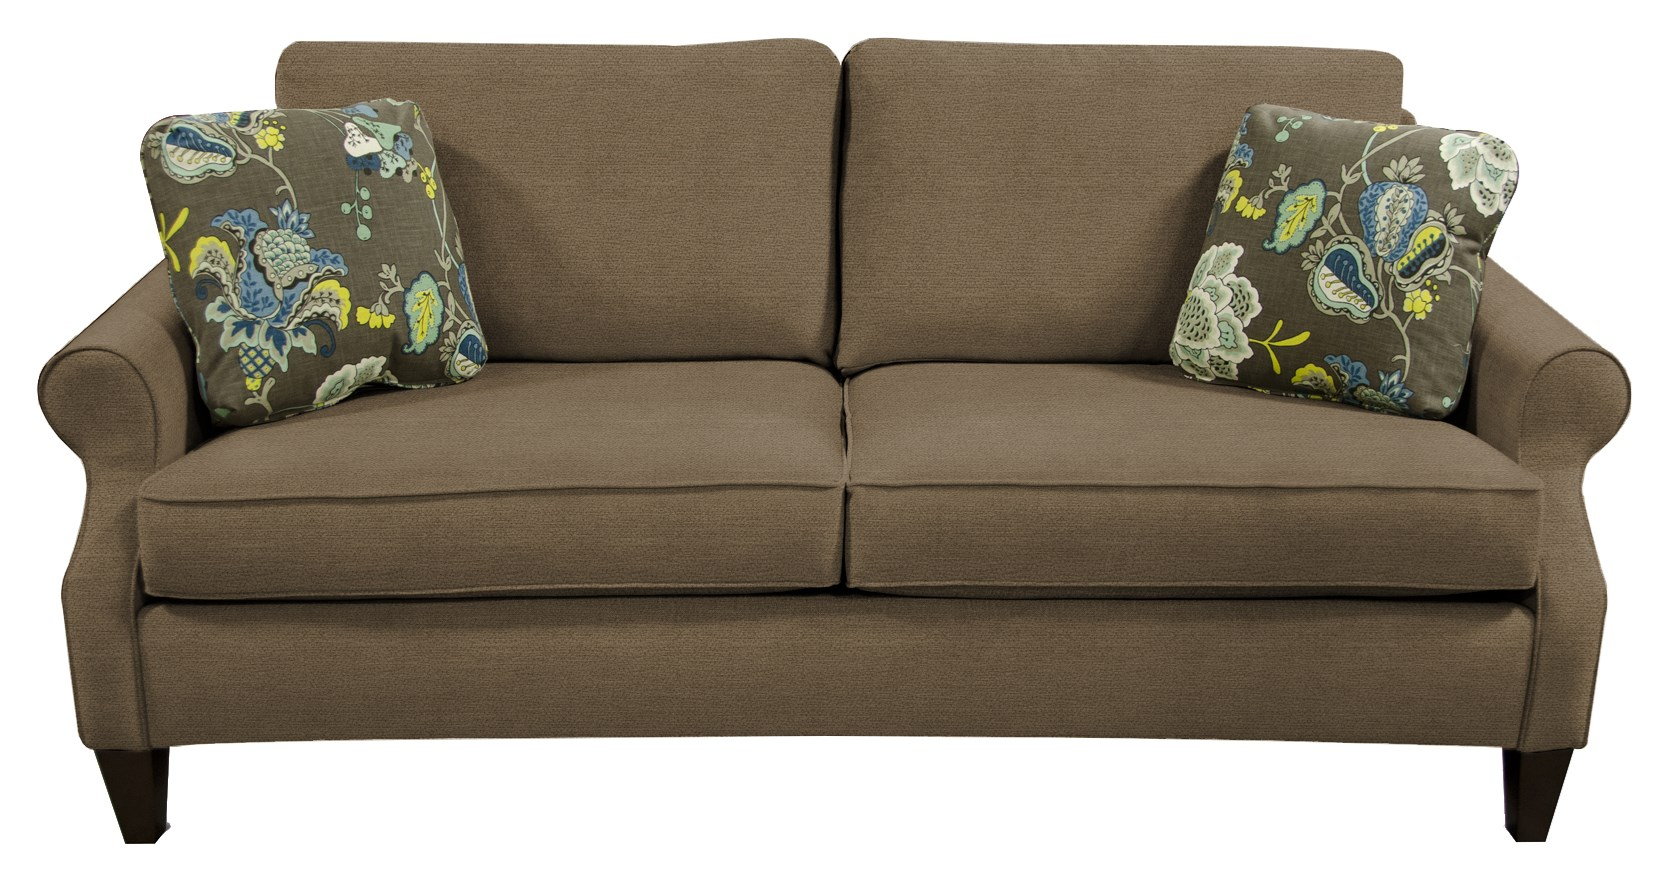 England Duke Living Room Sofa - Item Number: 3135-6065